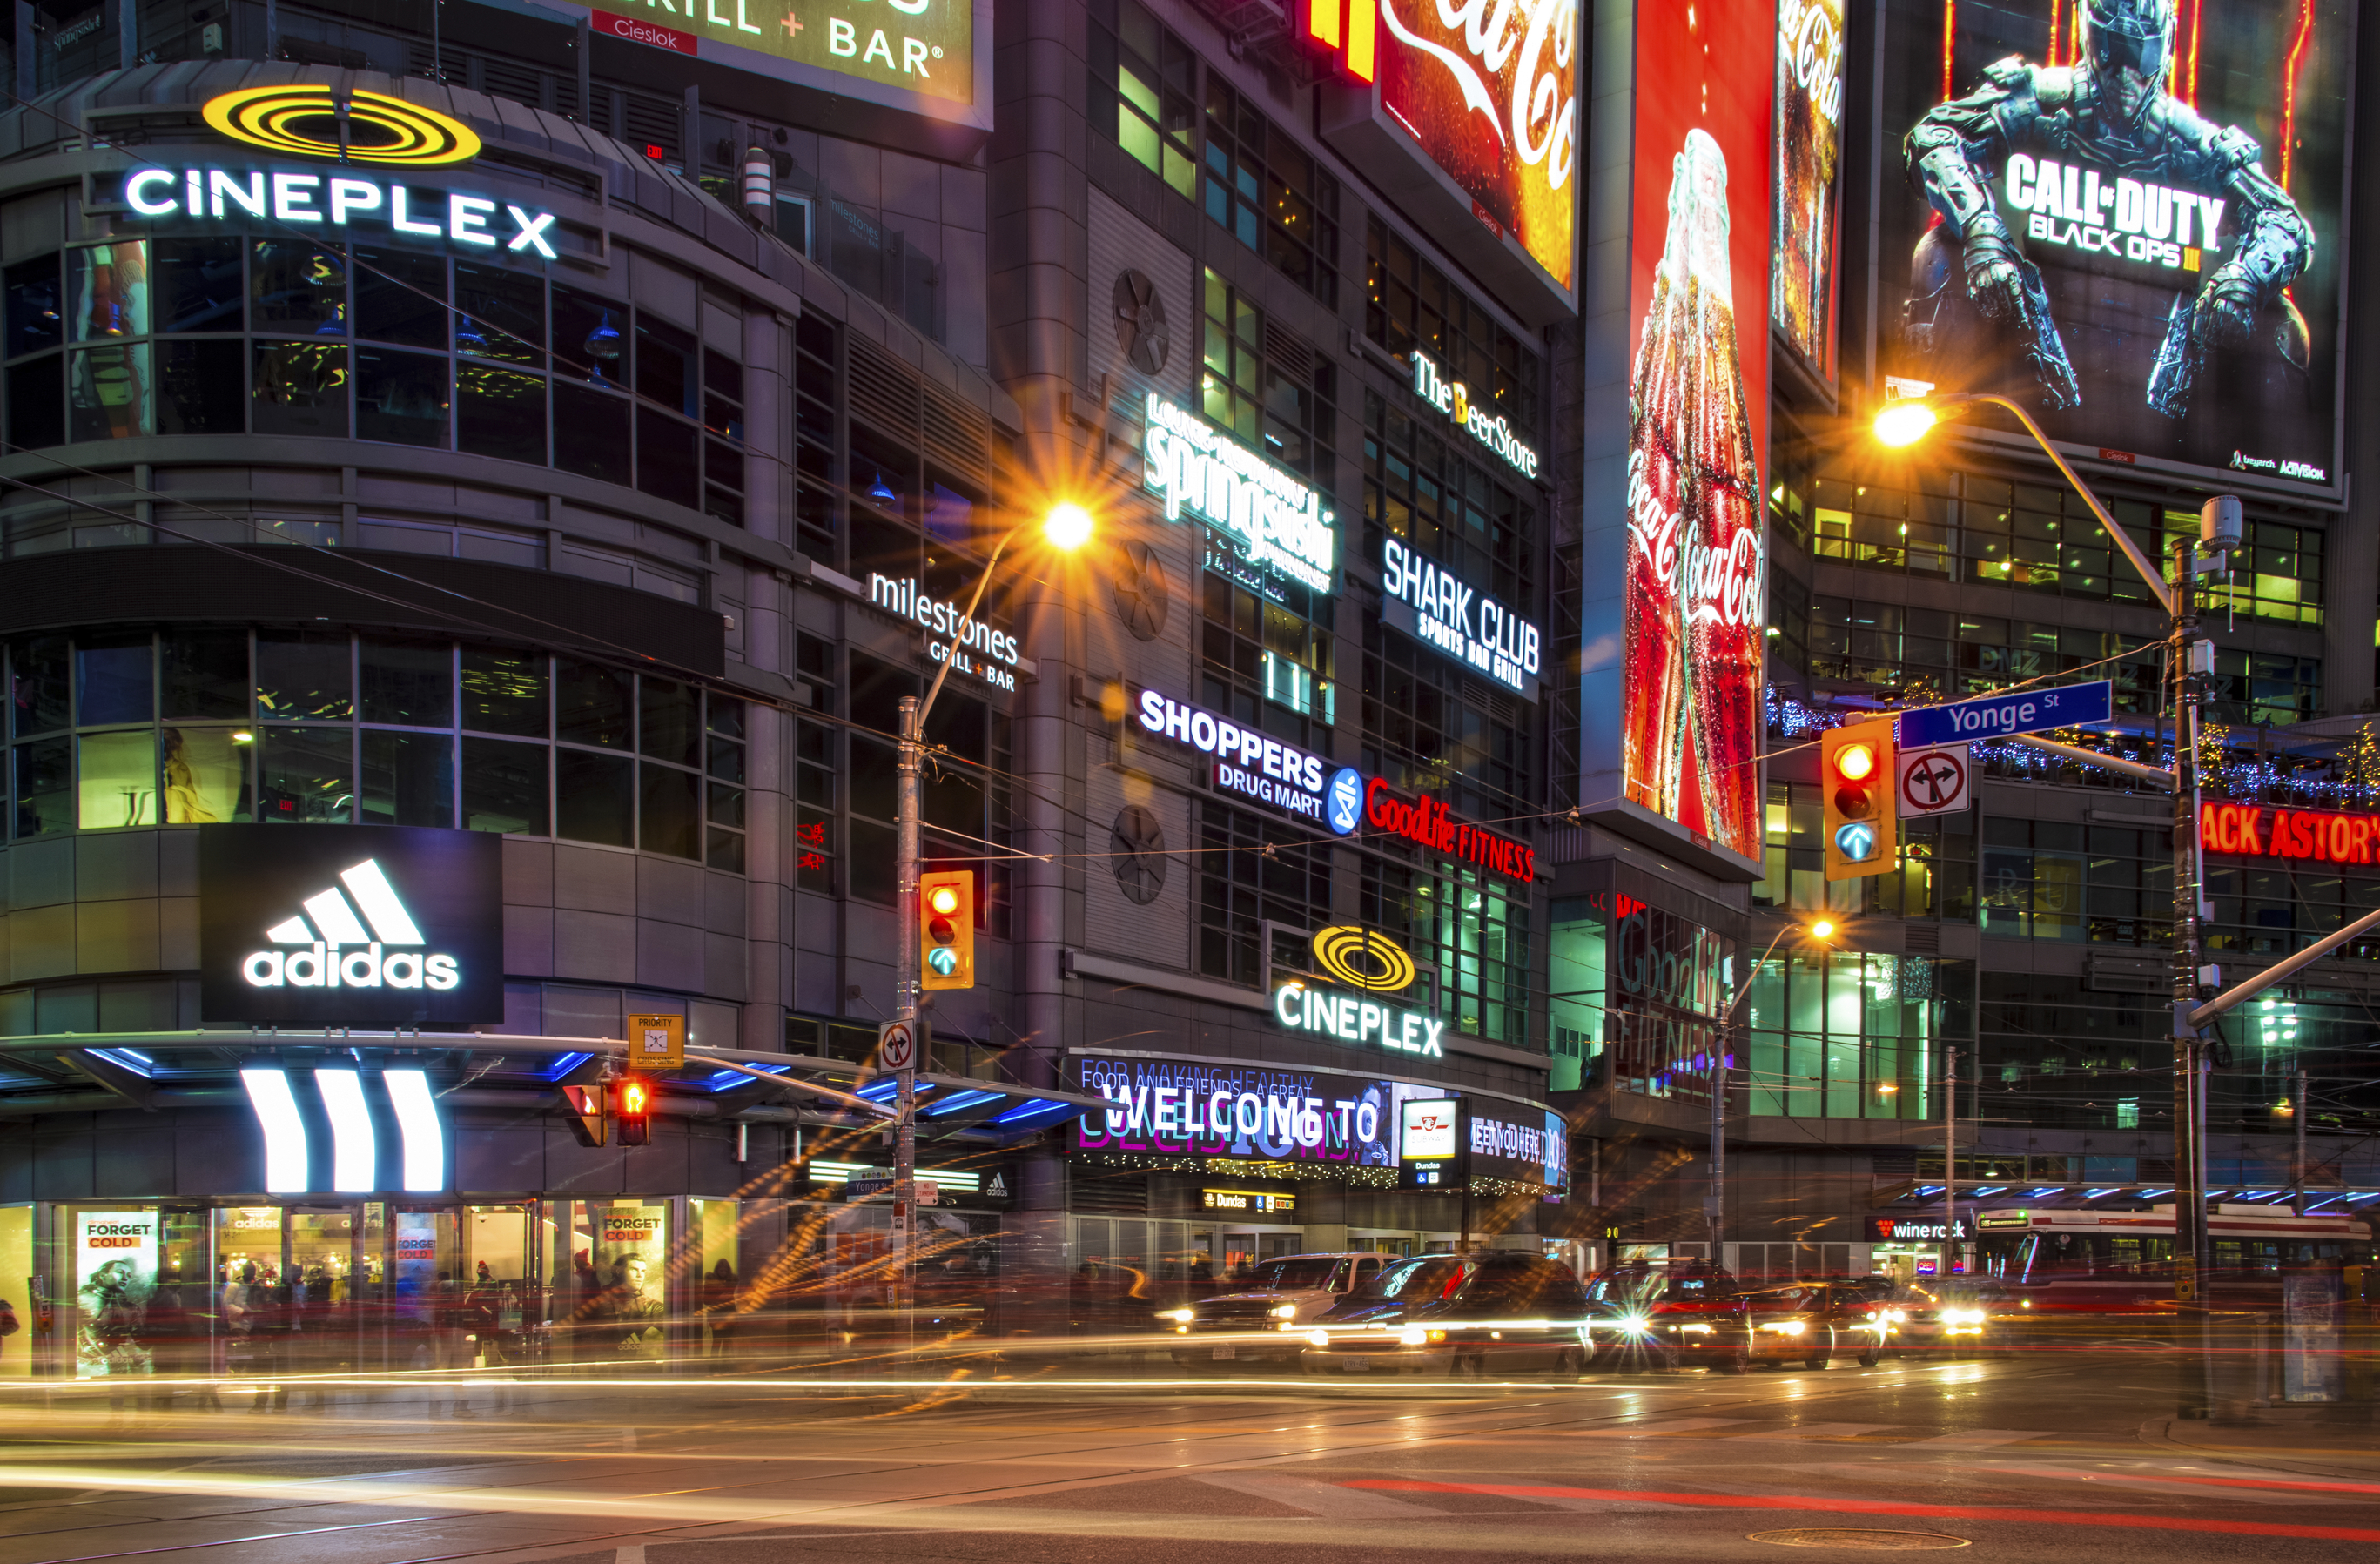 Dundas Square at night time, long exposure. The Toronto landmark is one of the busiest intersection in the city. Yonge-Dundas Square was first conceived in 1997 as part of revitalizing the intersection, and was designed by Brown and Storey Architects.